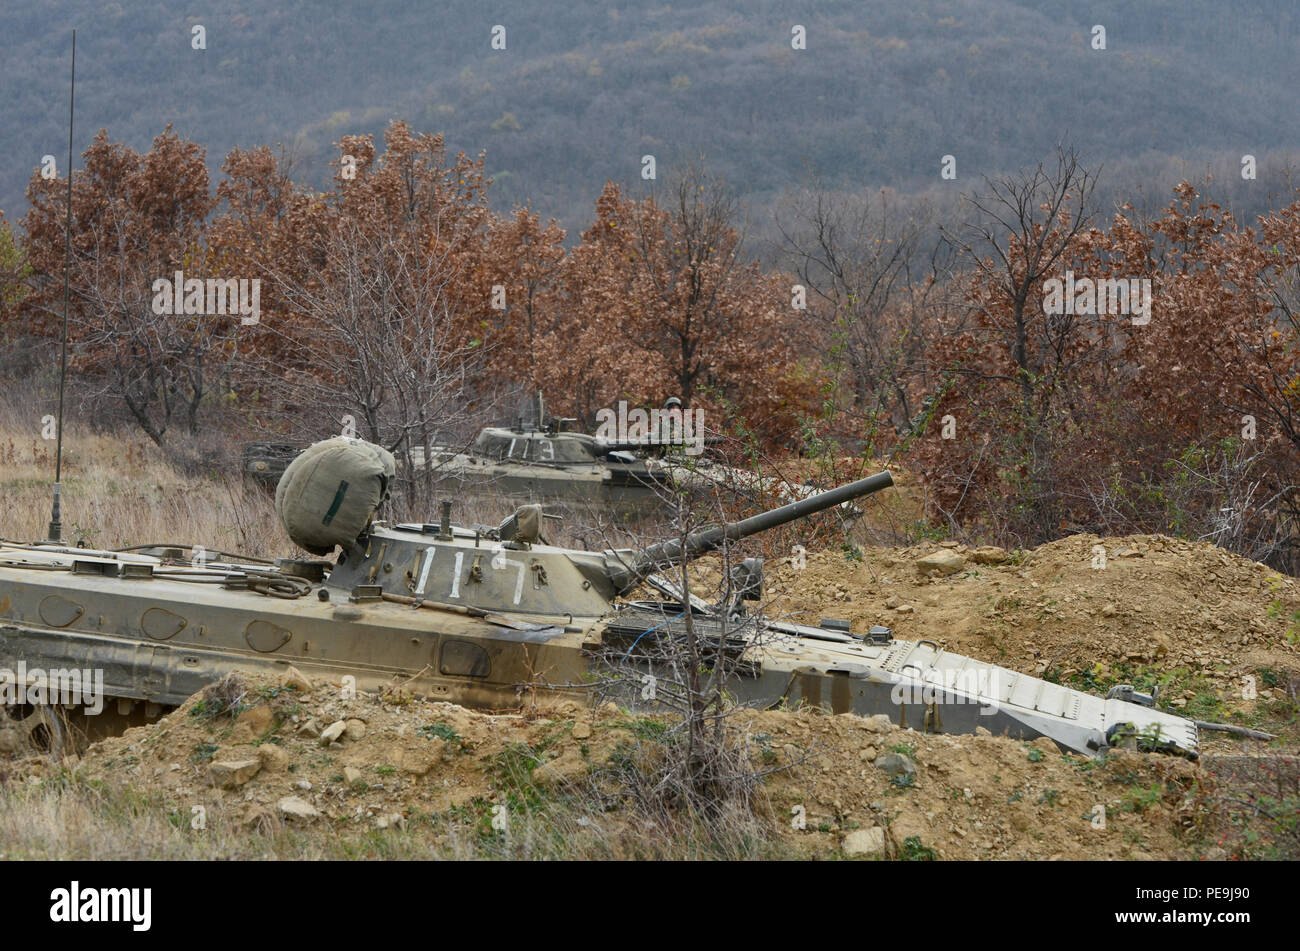 Bulgarian soldiers place the Boyevaya Mashina Pekhoty 1s (BMP -1) in a hull-down battle position during Exercise Peace Sentinel at Novo Selo Training Center, Bulgaria, Nov. 21, 2015. The BMP-1 is a Soviet amphibious tracked infantry fighting vehicle. (U.S. Army photo by Staff Sgt. Steven M. Colvin) - Stock Image